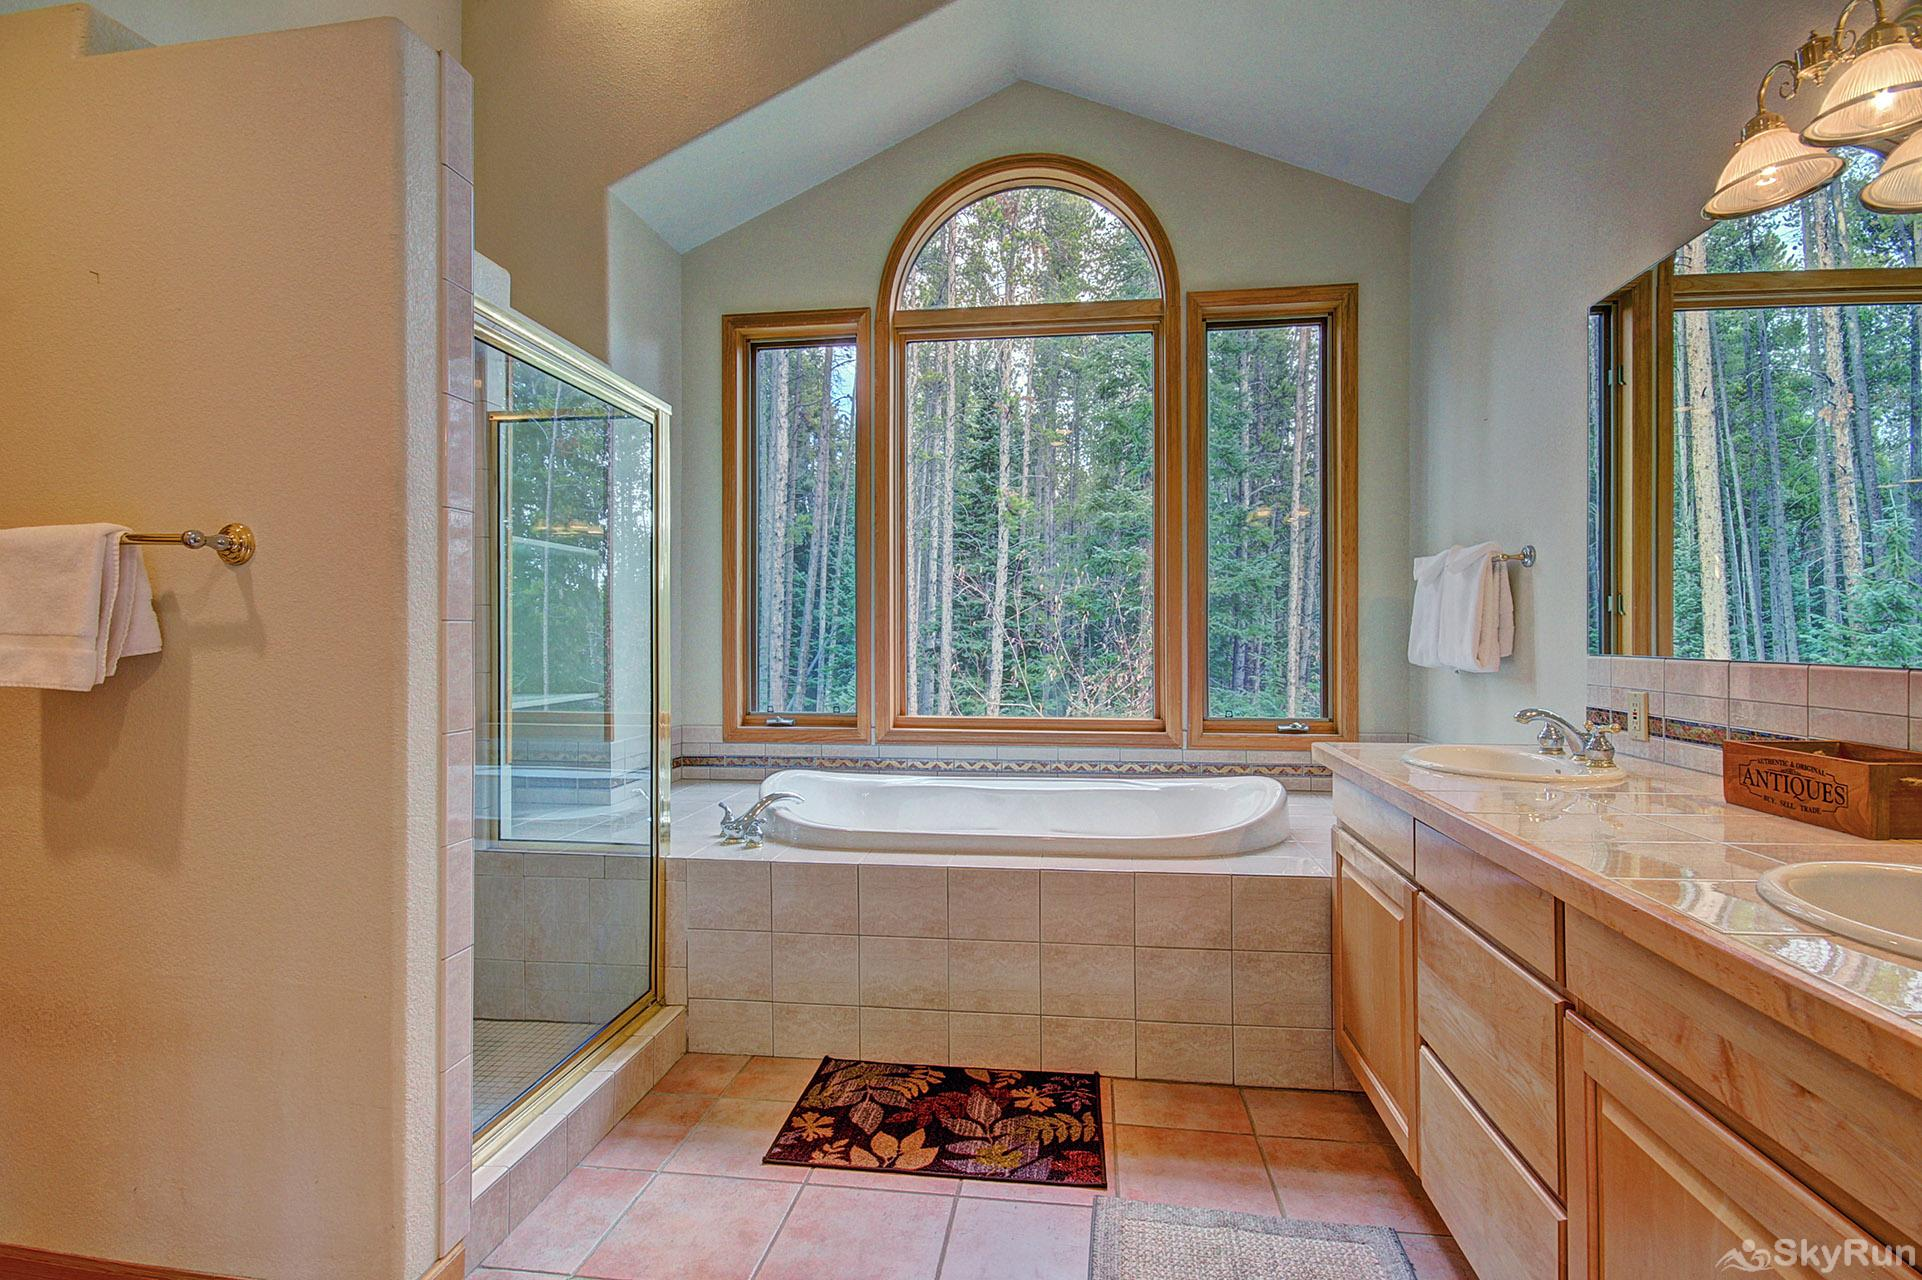 Secret Trail Lodge King master bedroom ensuite bath